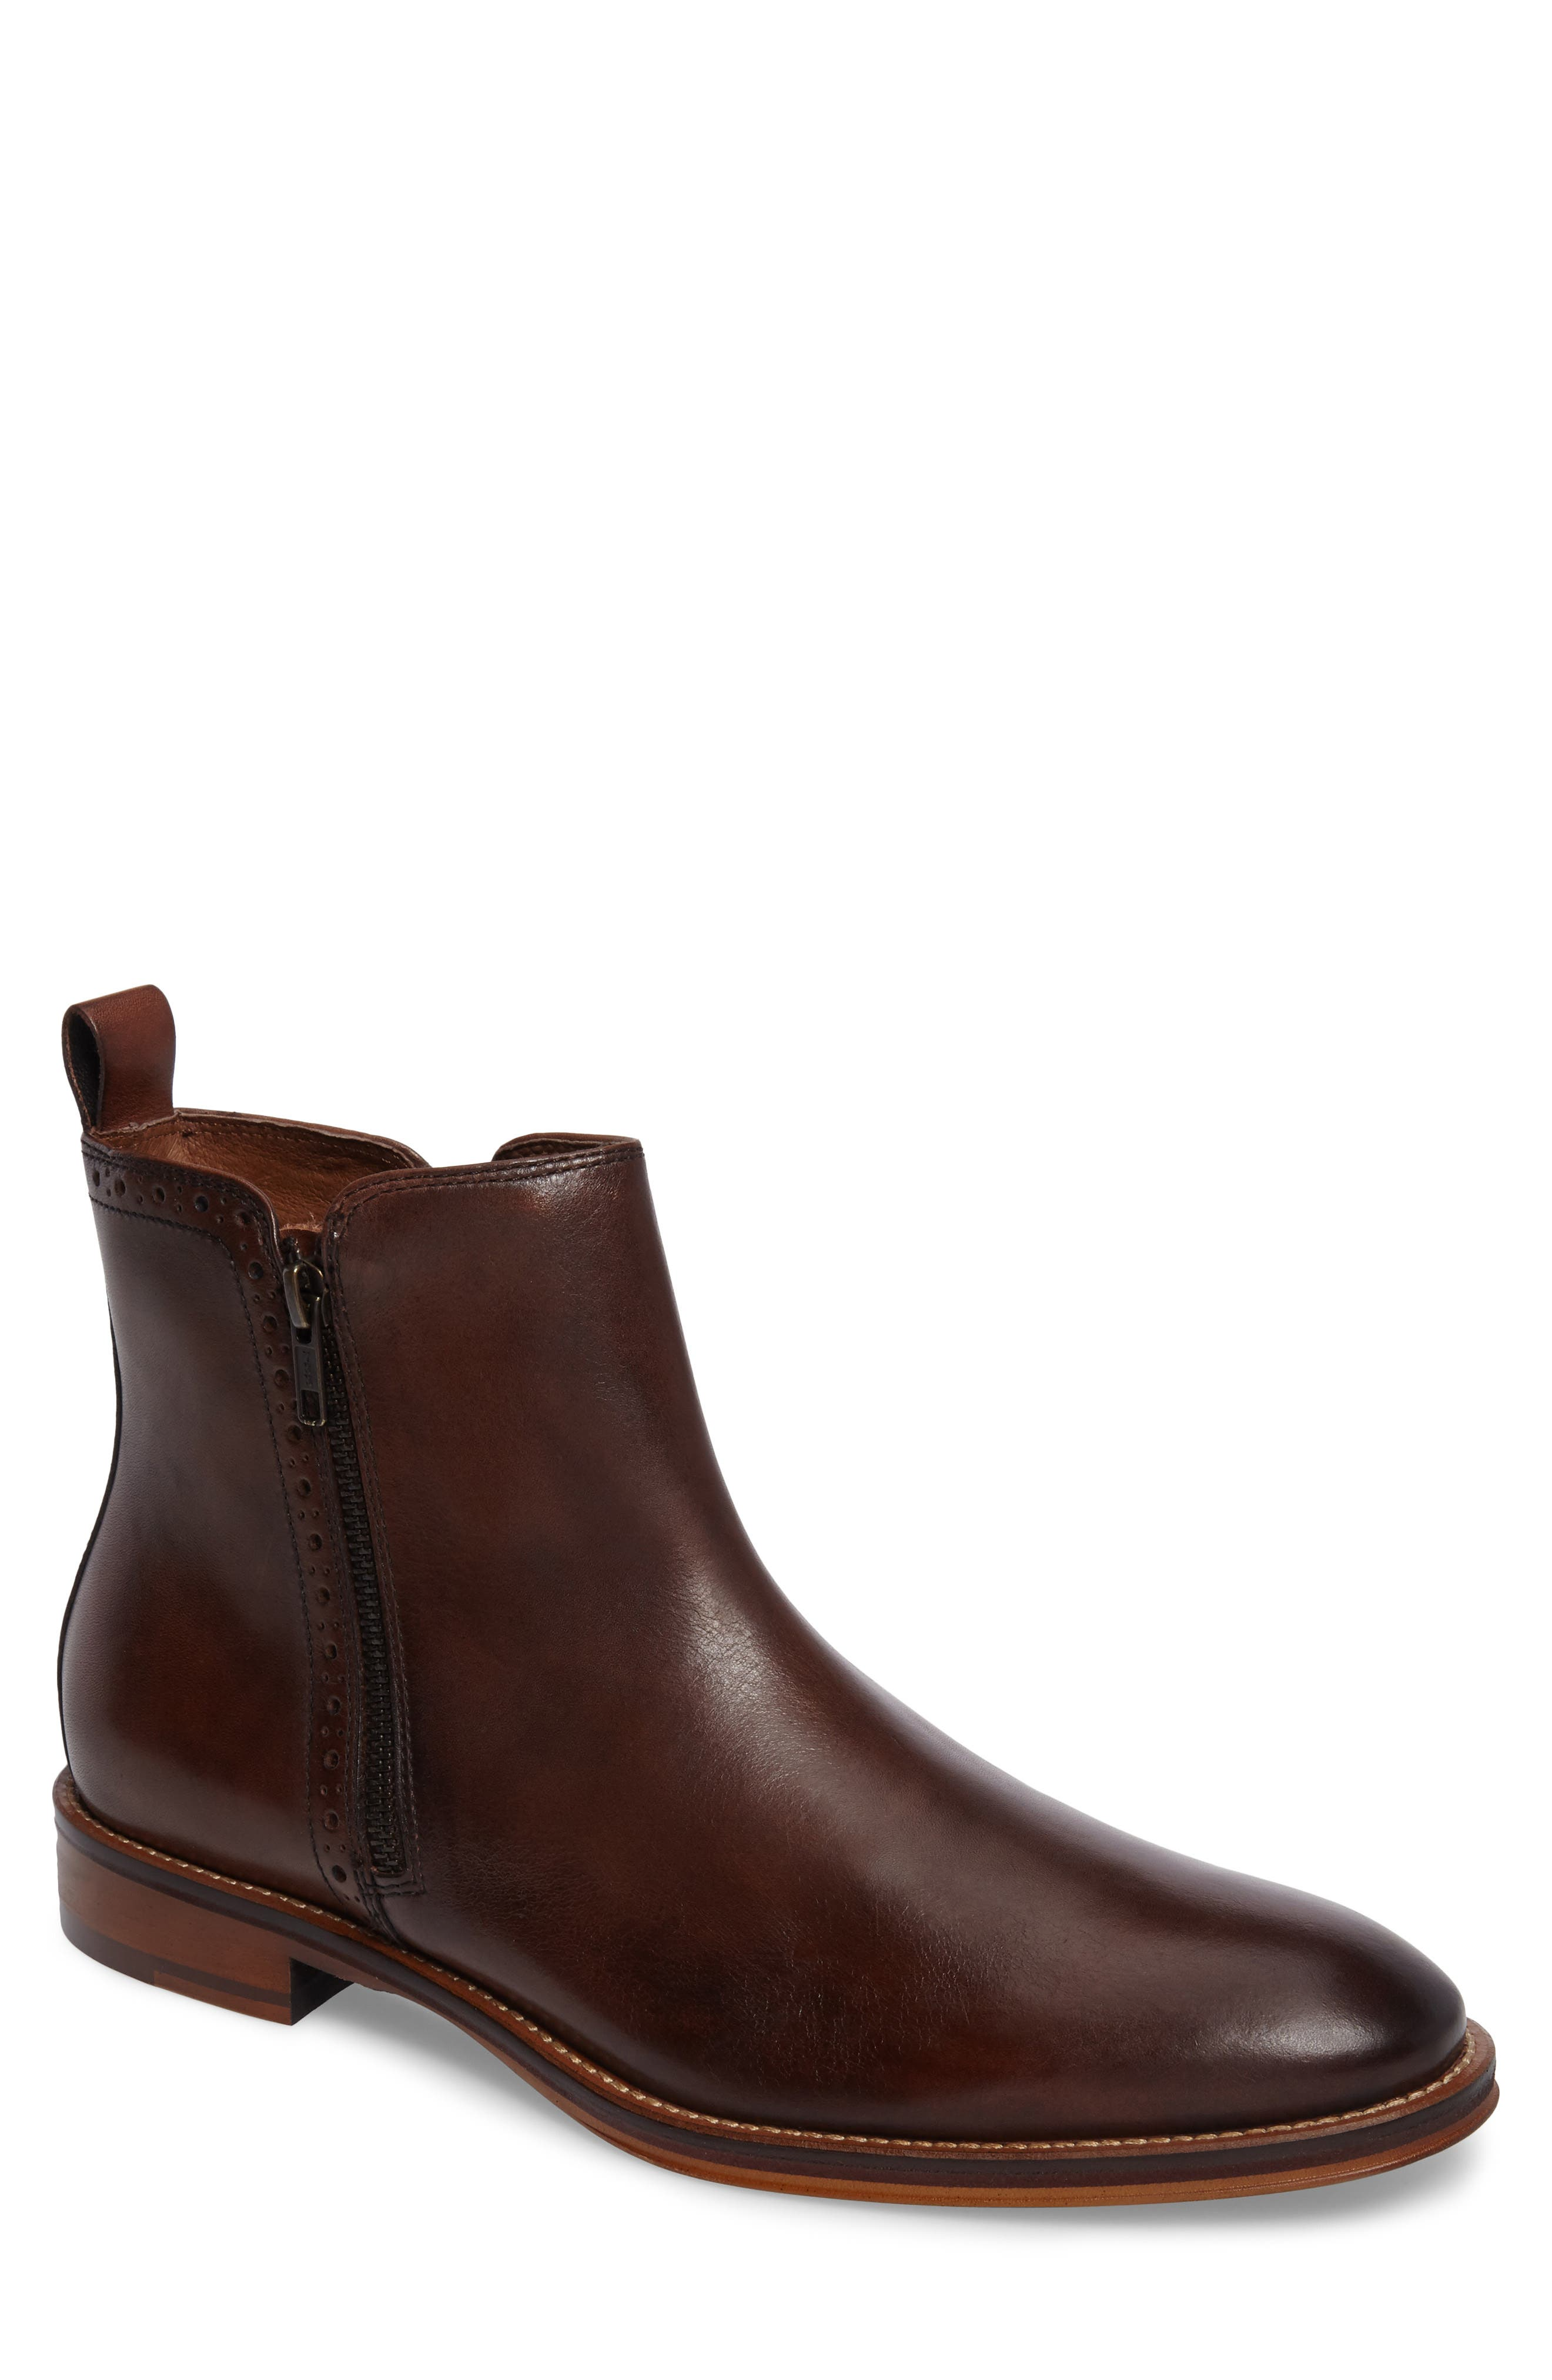 Alternate Image 1 Selected - Johnston & Murphy Conard Boot (Men)